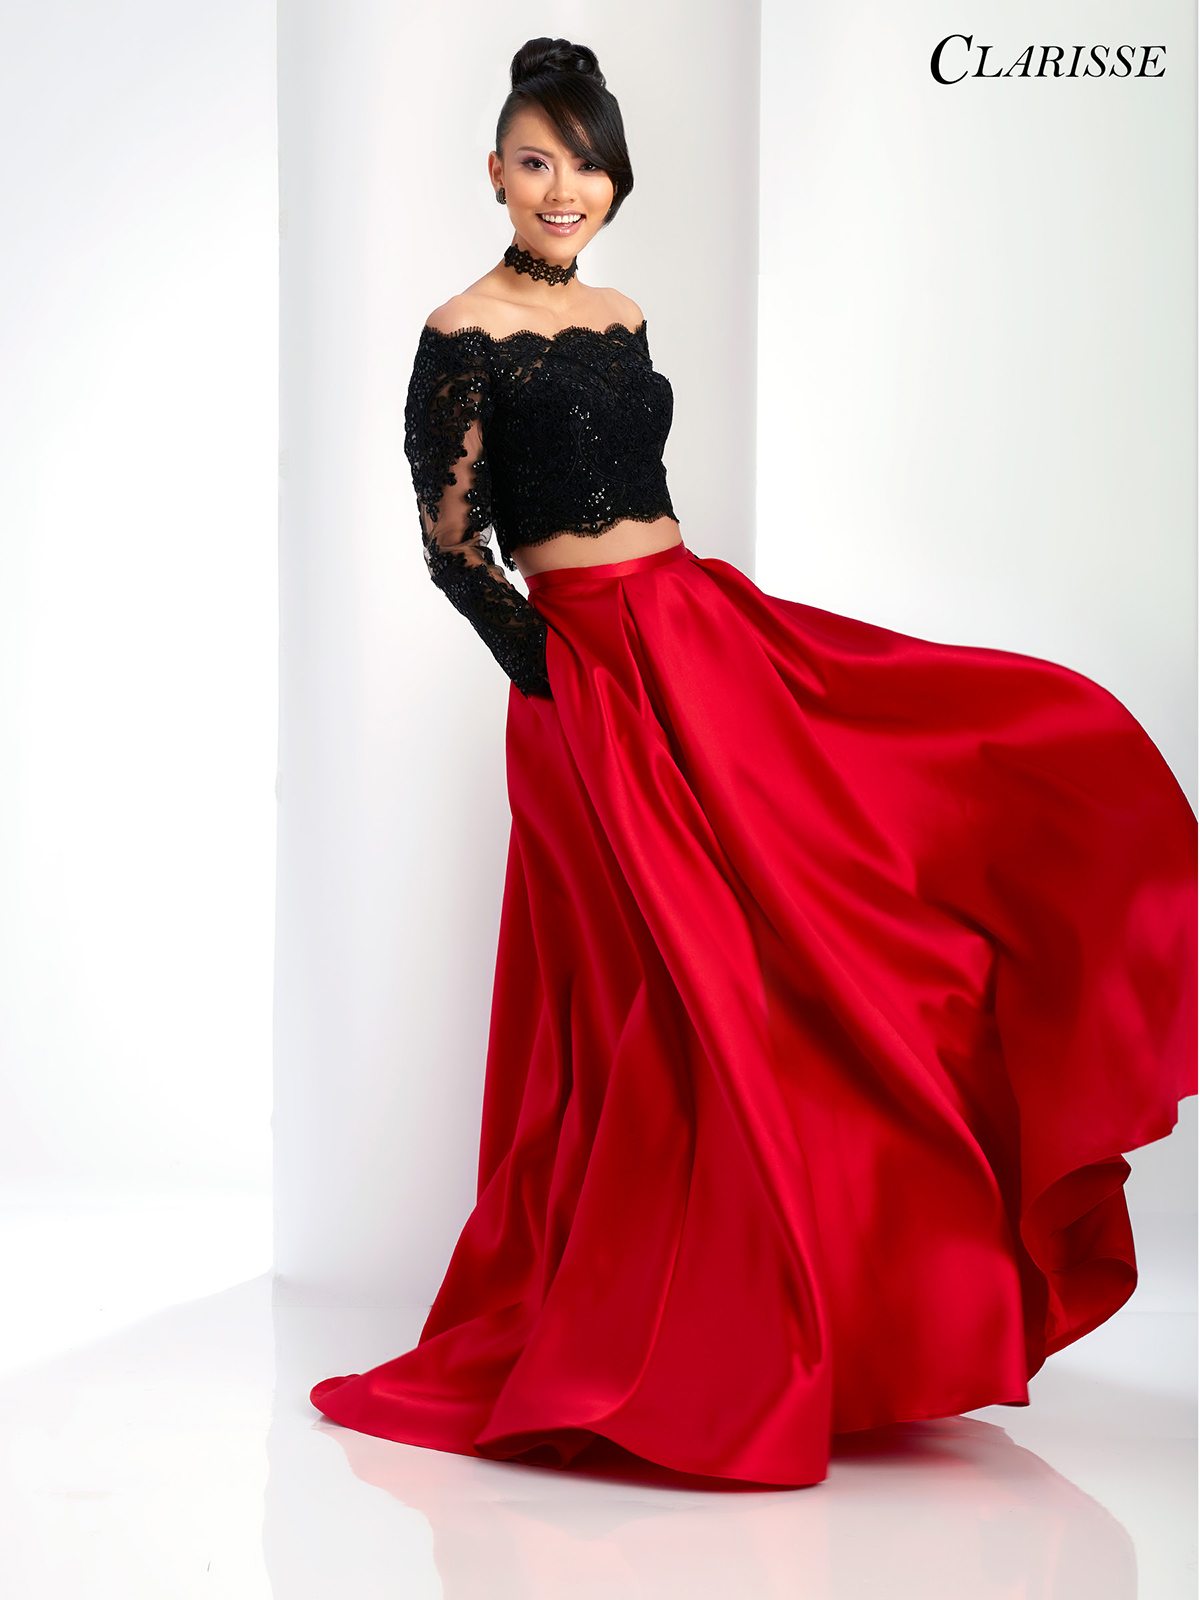 2018 Prom Dress Clarisse 3581 | Promgirl.net